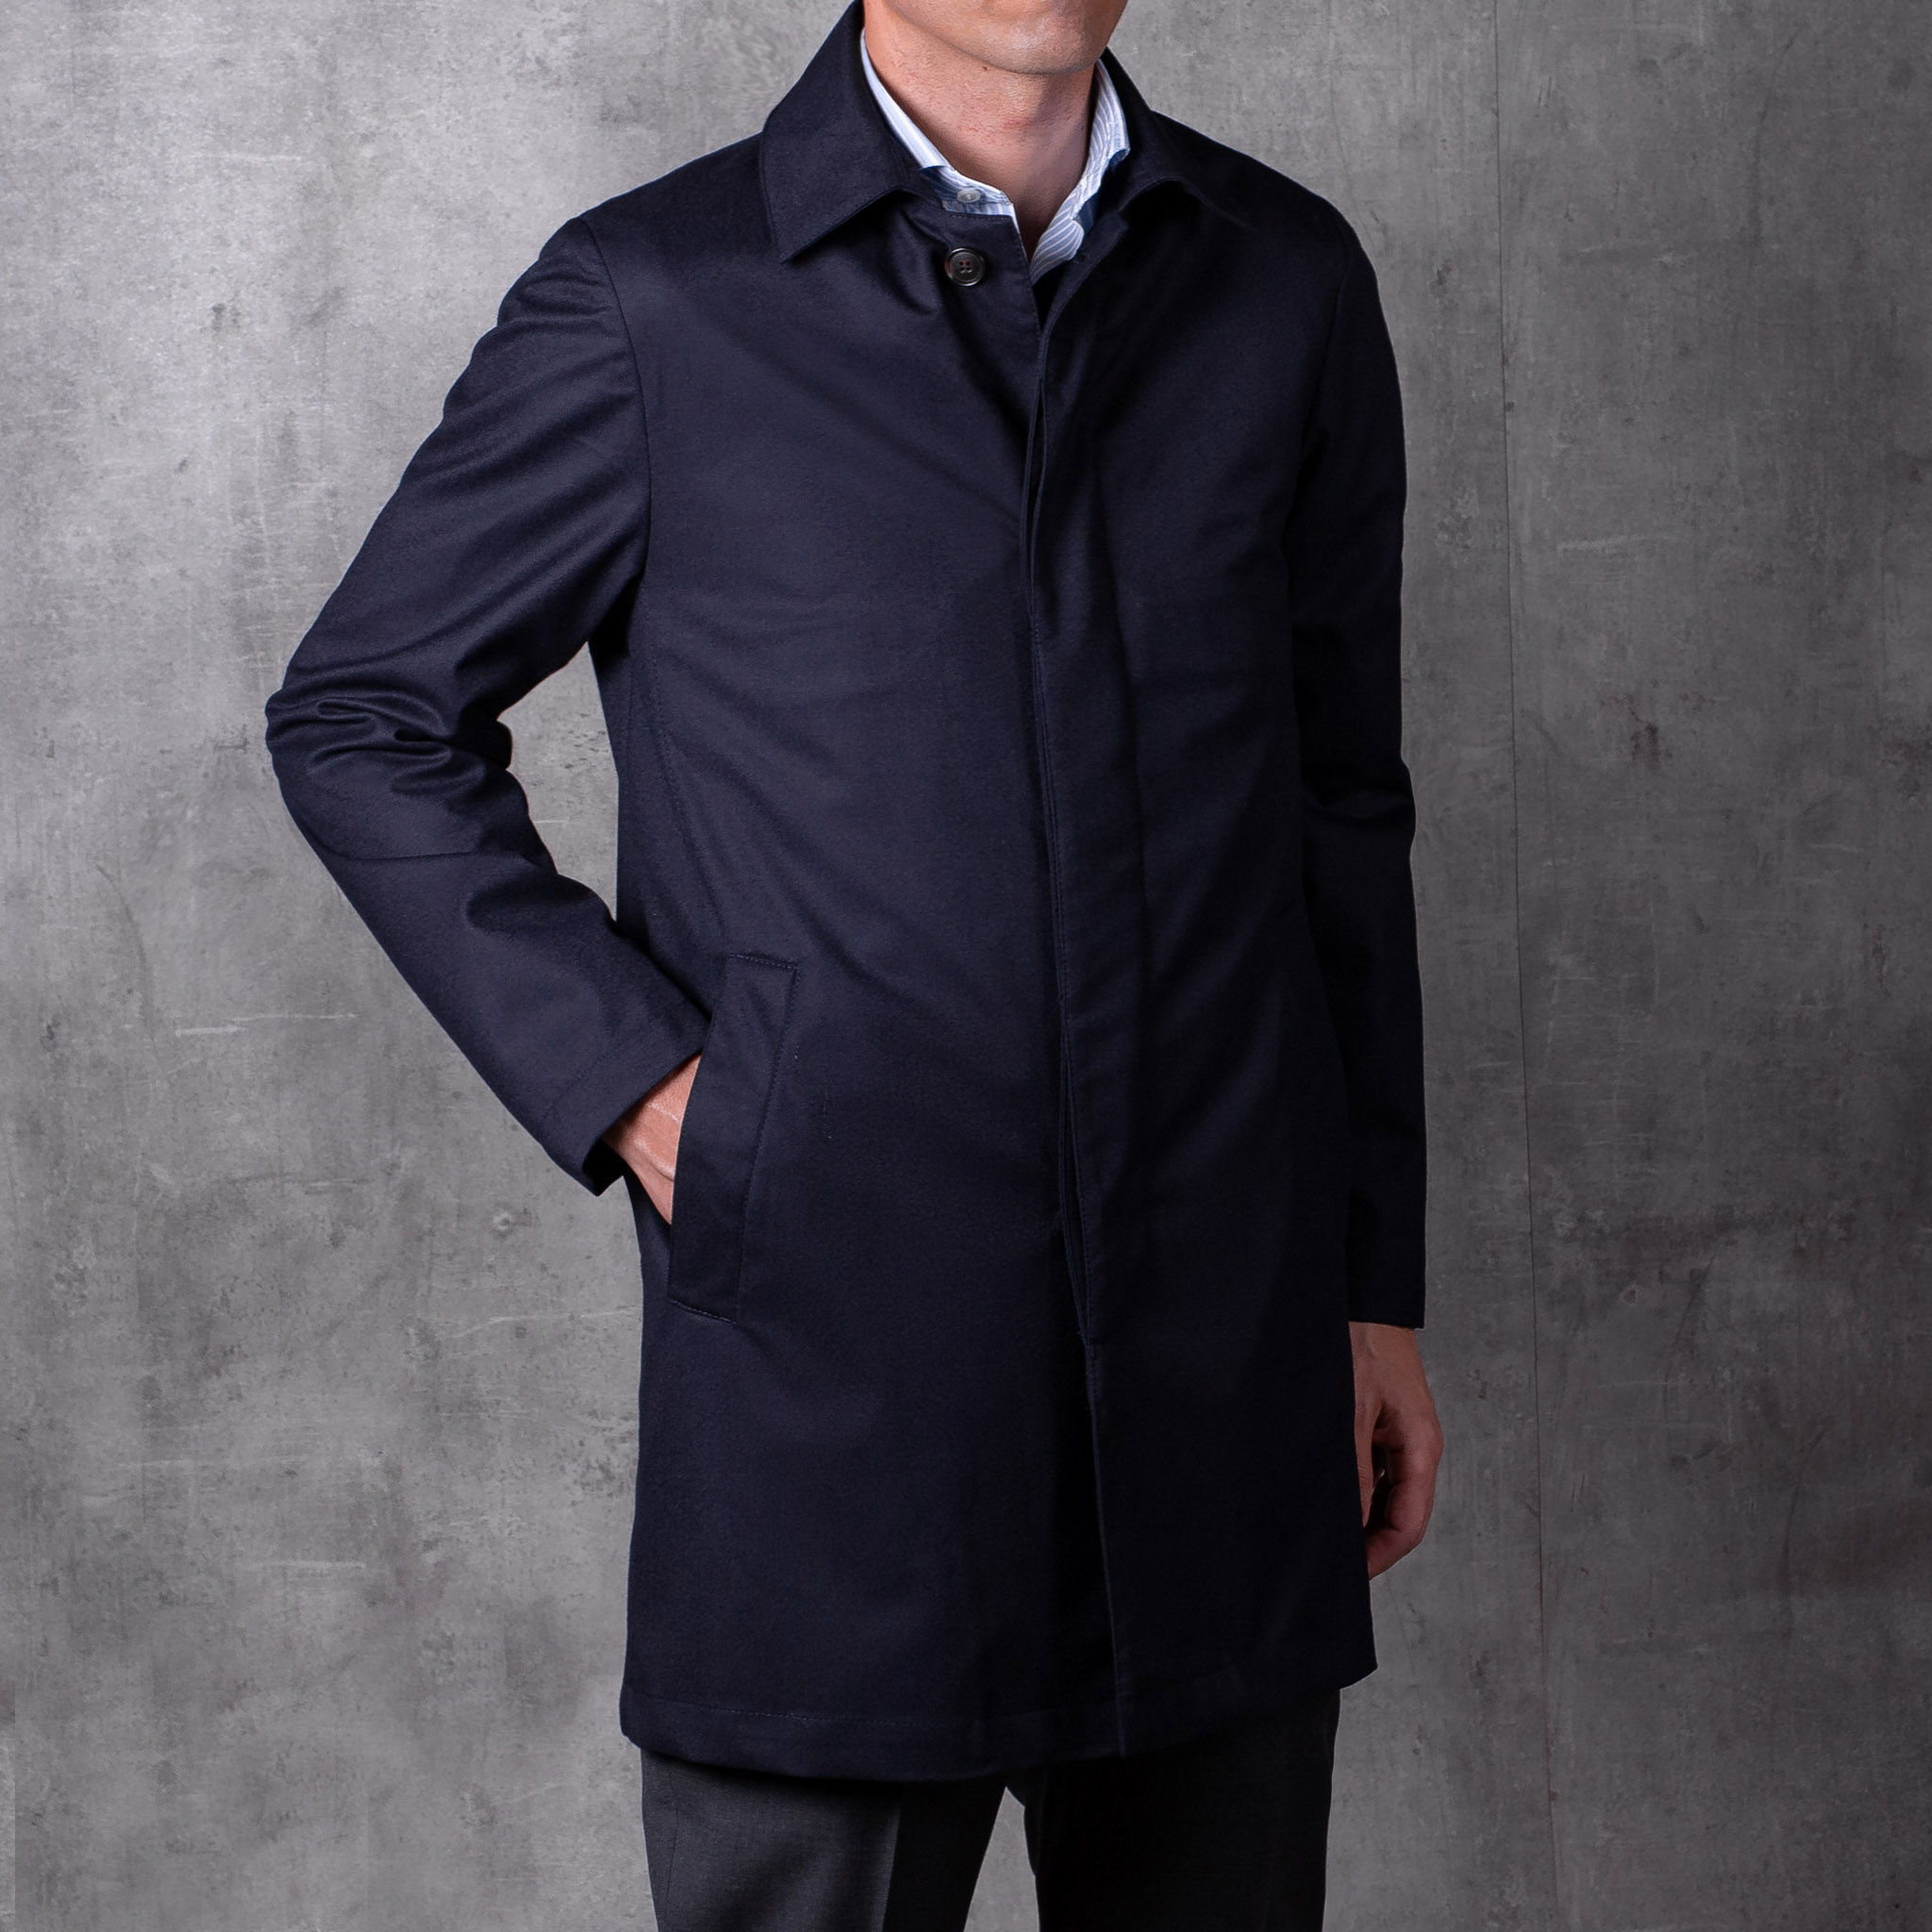 RAINCOAT-GABARDINA-01-01-The-Seelk-1